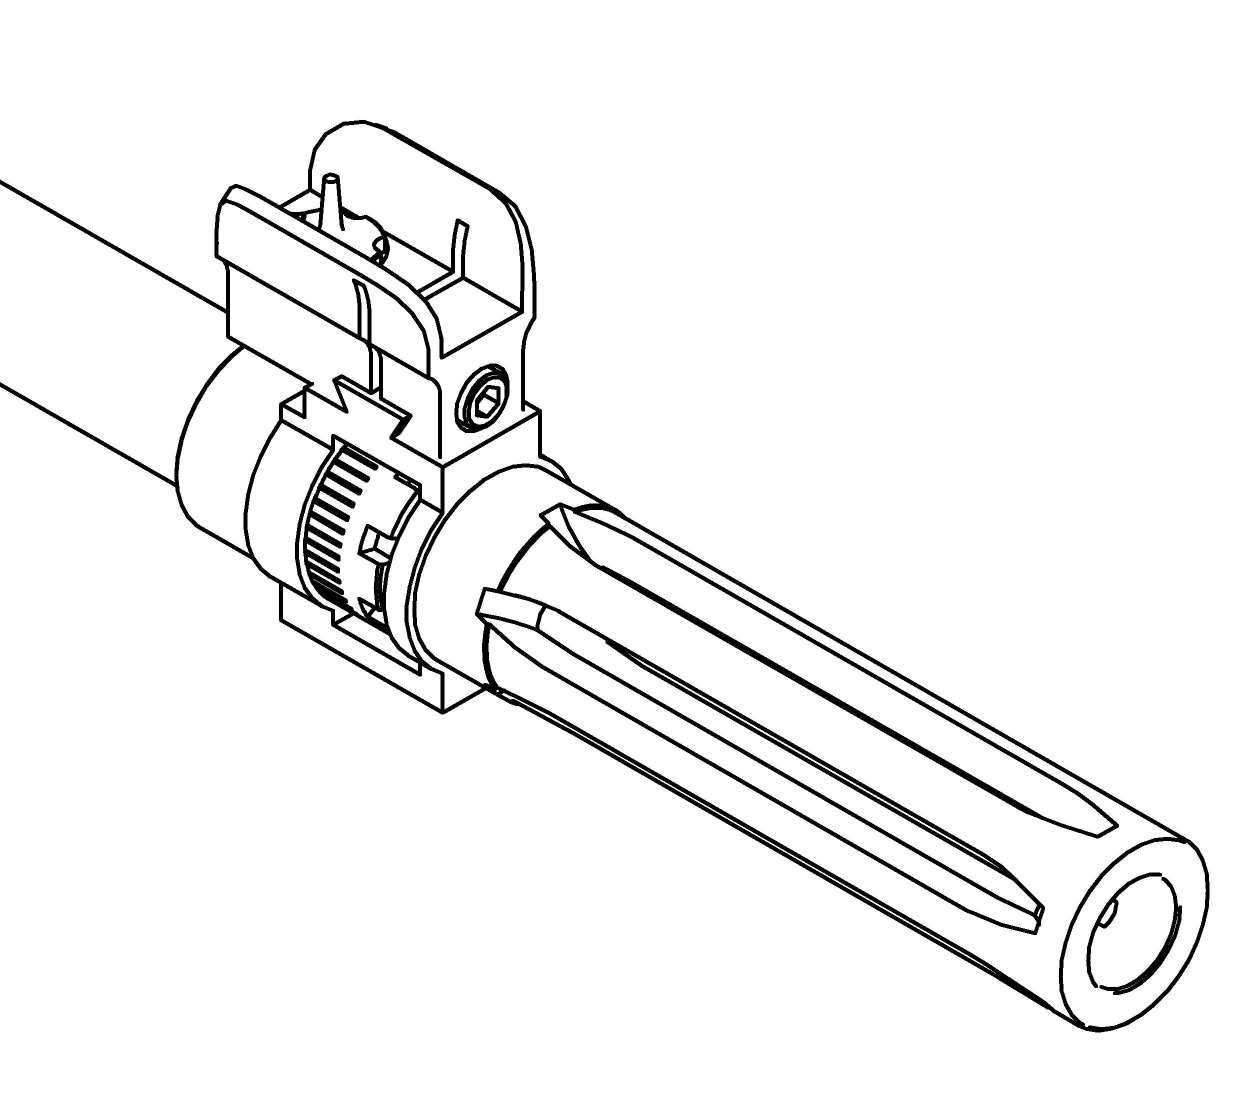 Adjustable Front Sight Tower for M14/M1A Scout Rifle